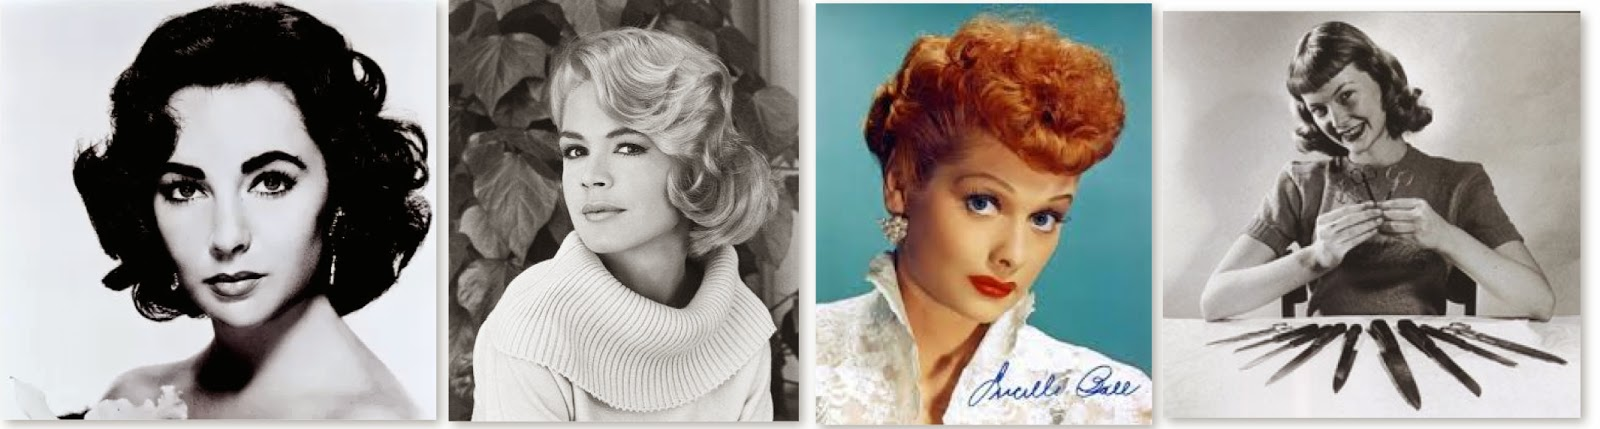 Musings Of A Painted Lady Vintage Hairstyles What To Call That Do